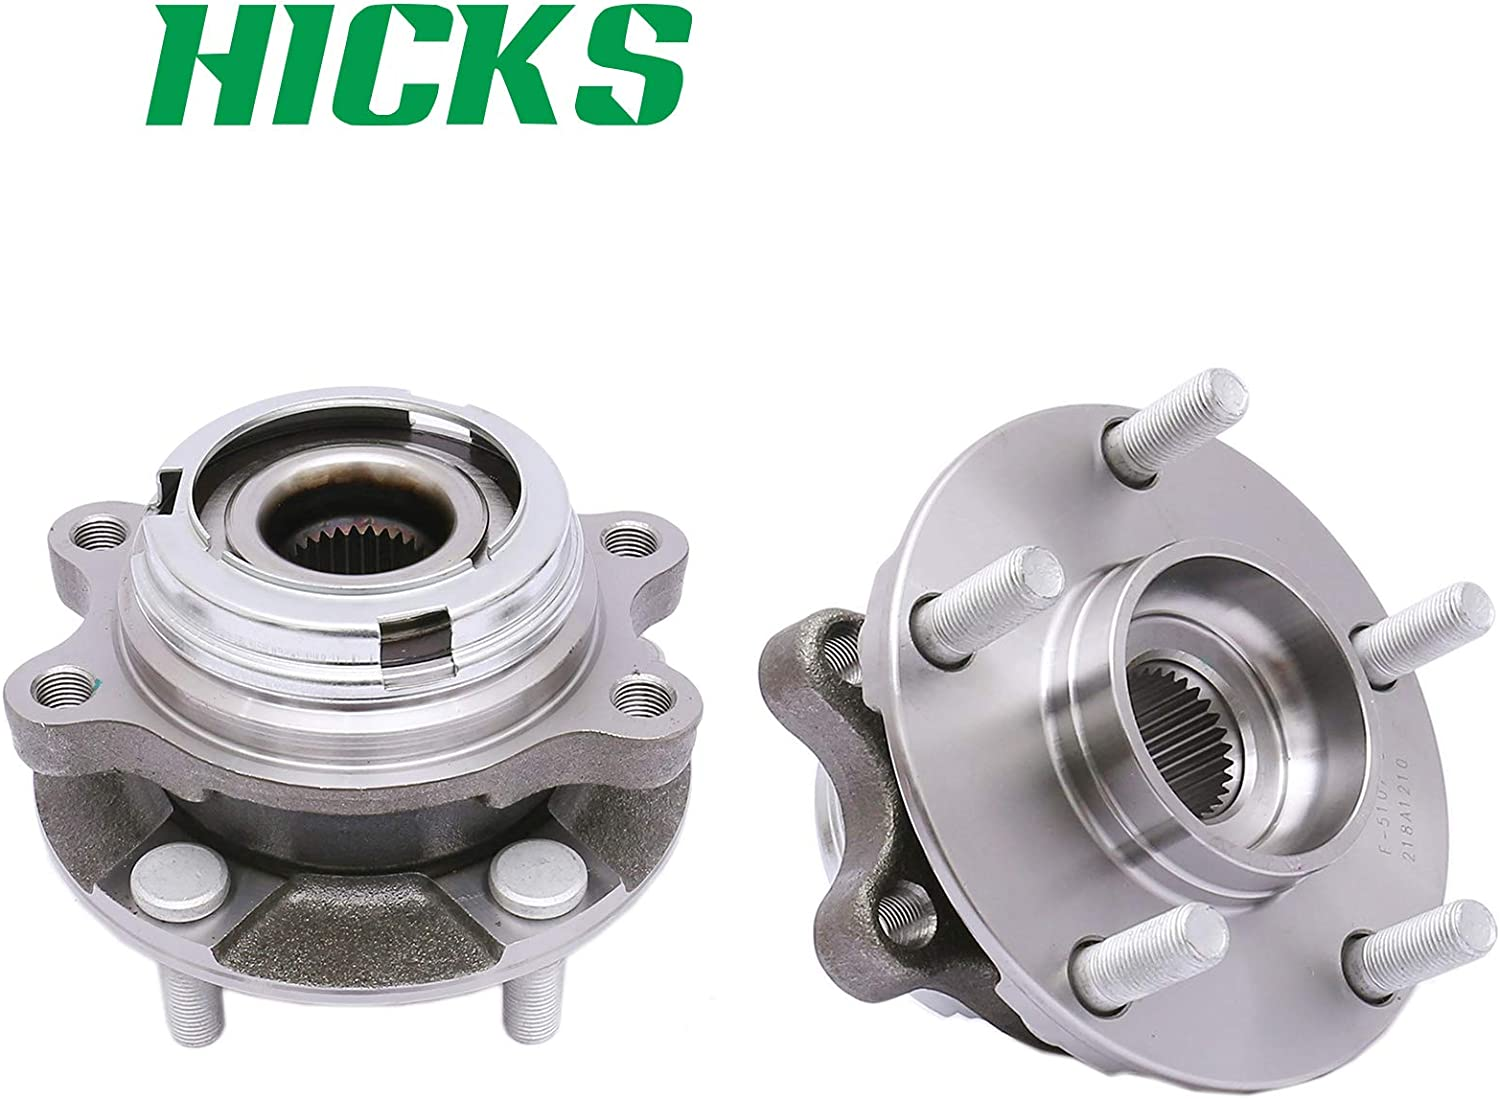 HICKS 513310x2 Front Wheel Hub and Bearing Assembly Axle for 03-07 Nissan Murano 04-09 Nissan Quest Set